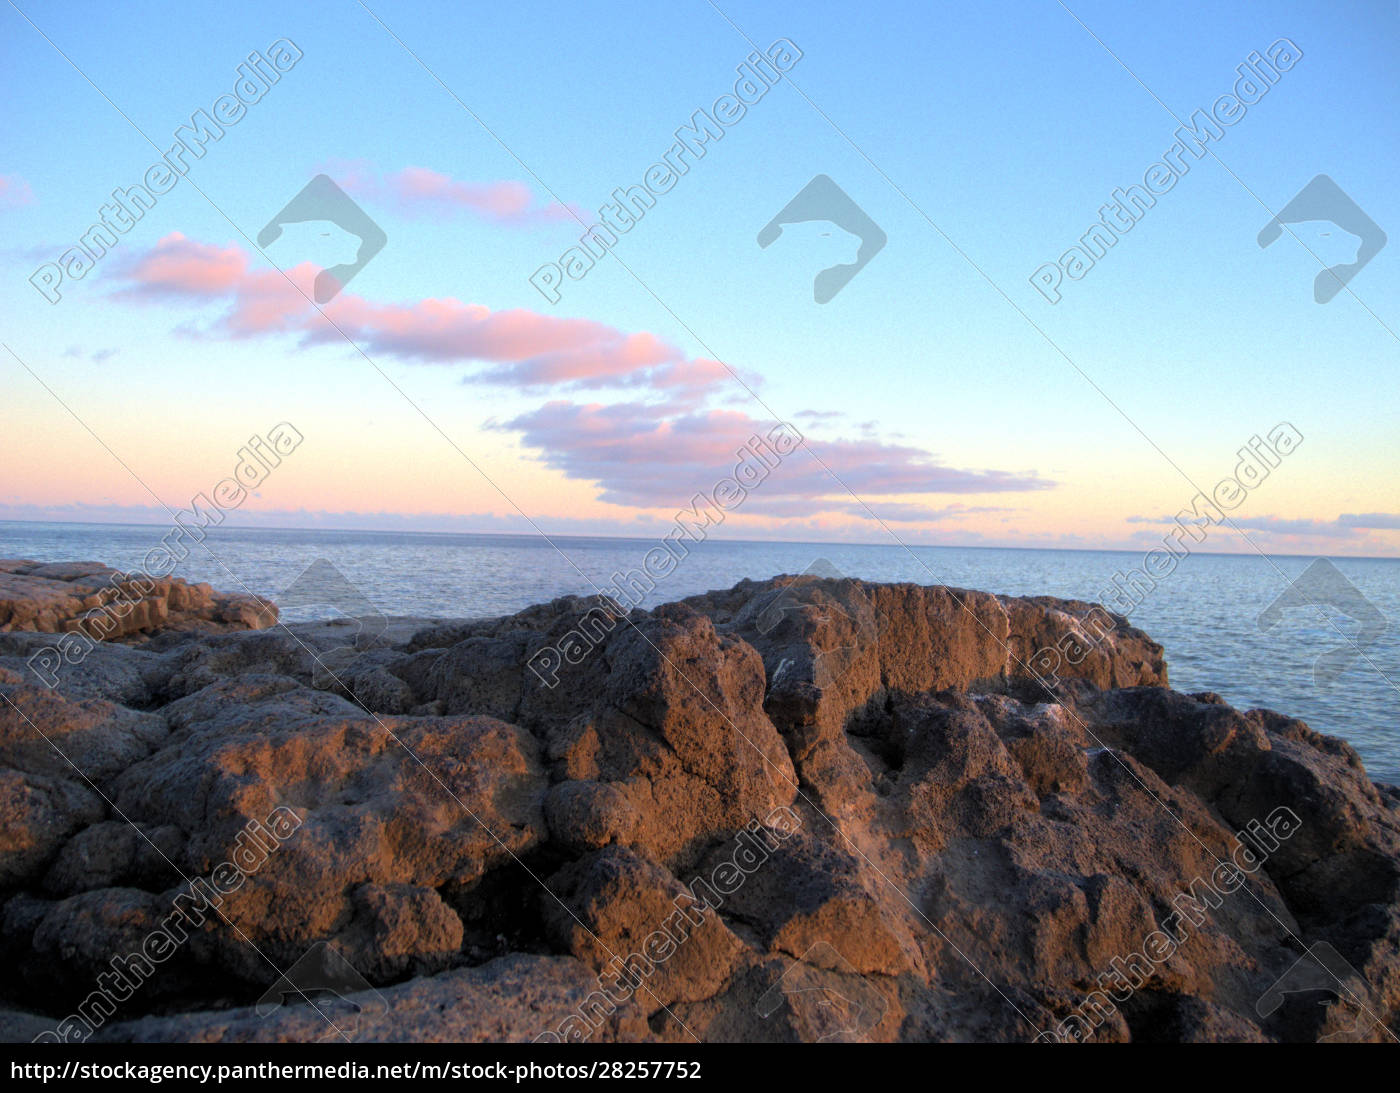 sunset, over, calm, caribbean, waters, in - 28257752